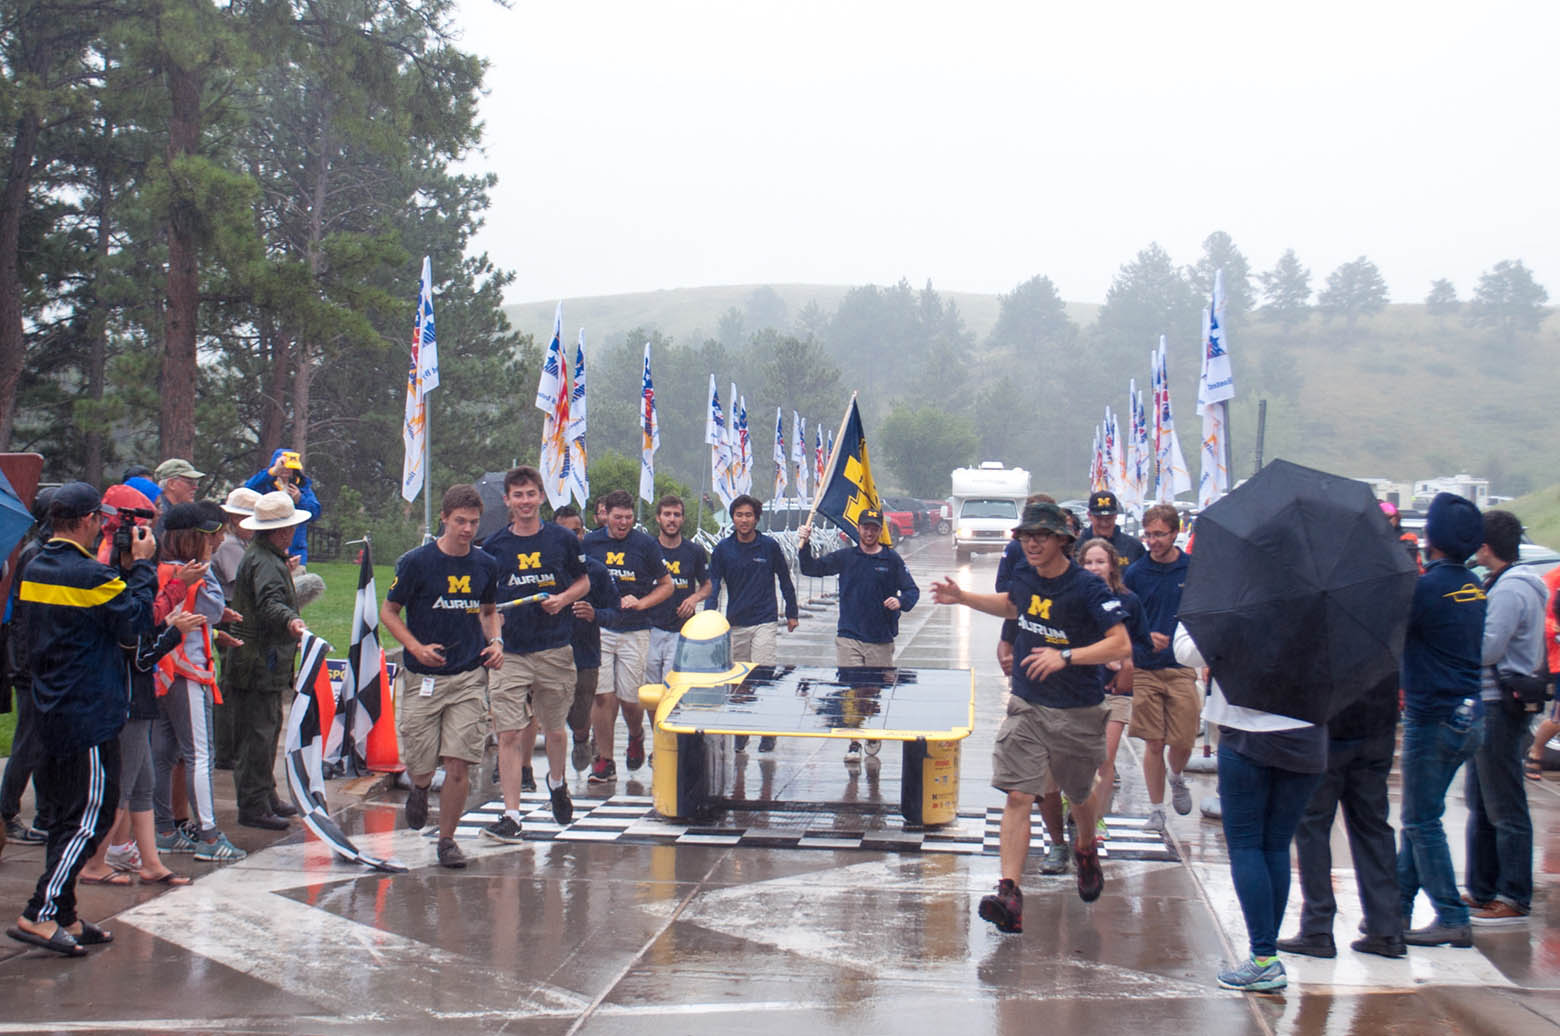 Members of the Michigan Solar Car team run across a finish line alongside their car, Aurum, in the rain.